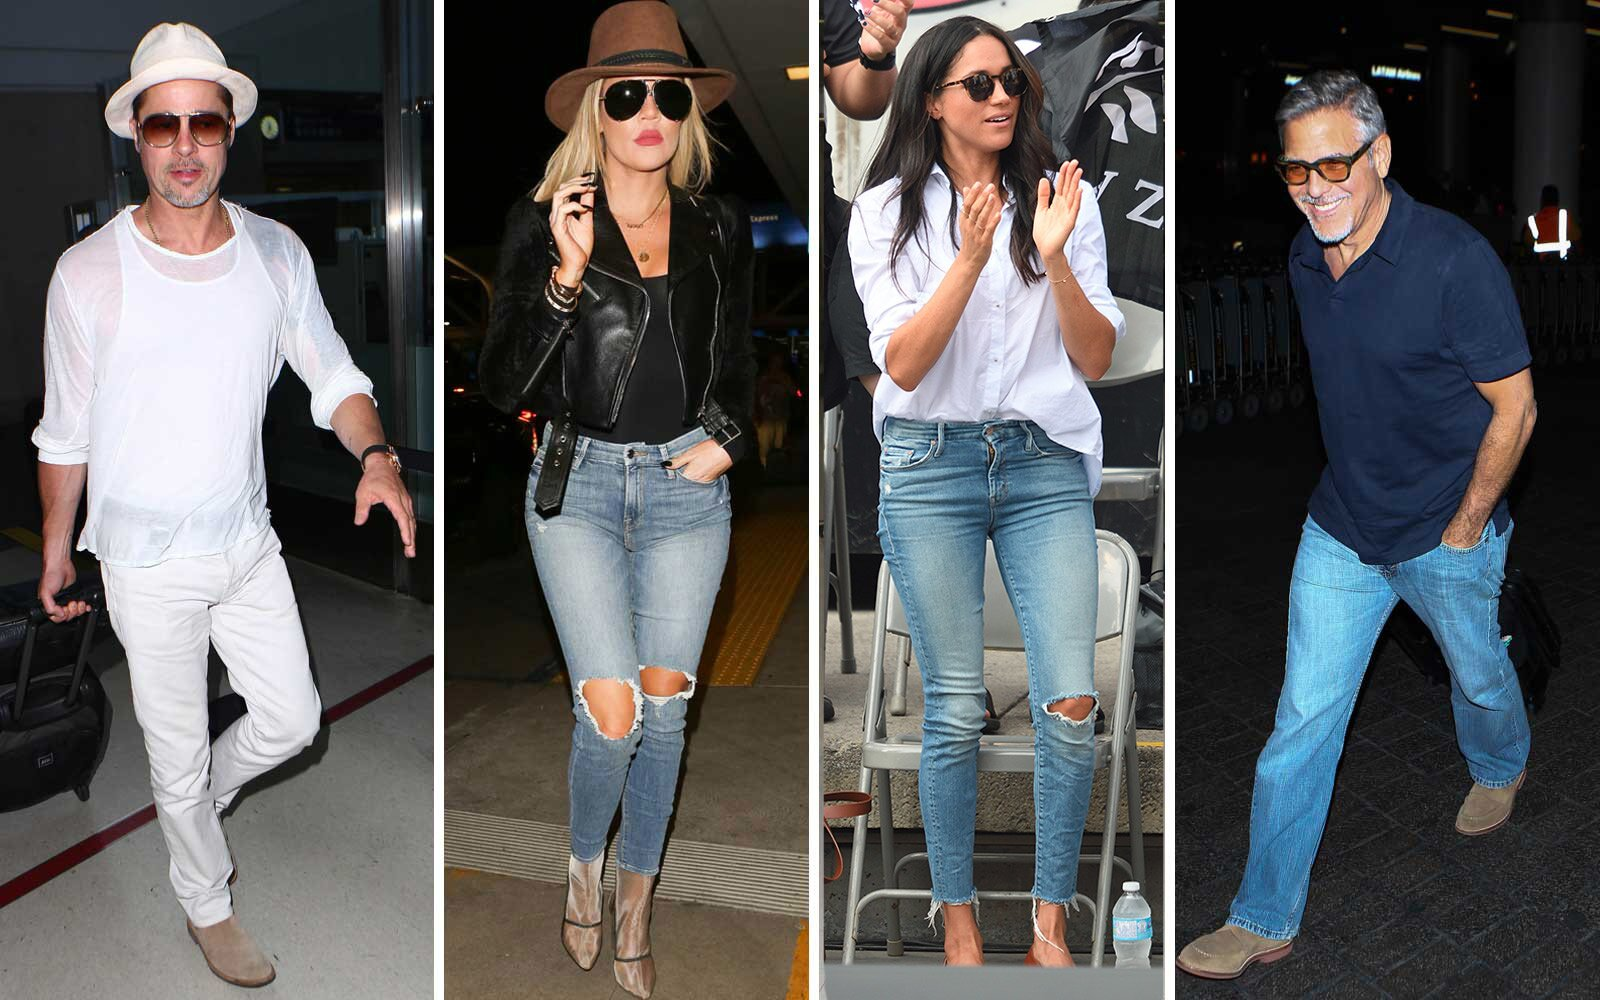 a36c19feea17 13 Pairs of Jeans Celebrities Wear When They Travel